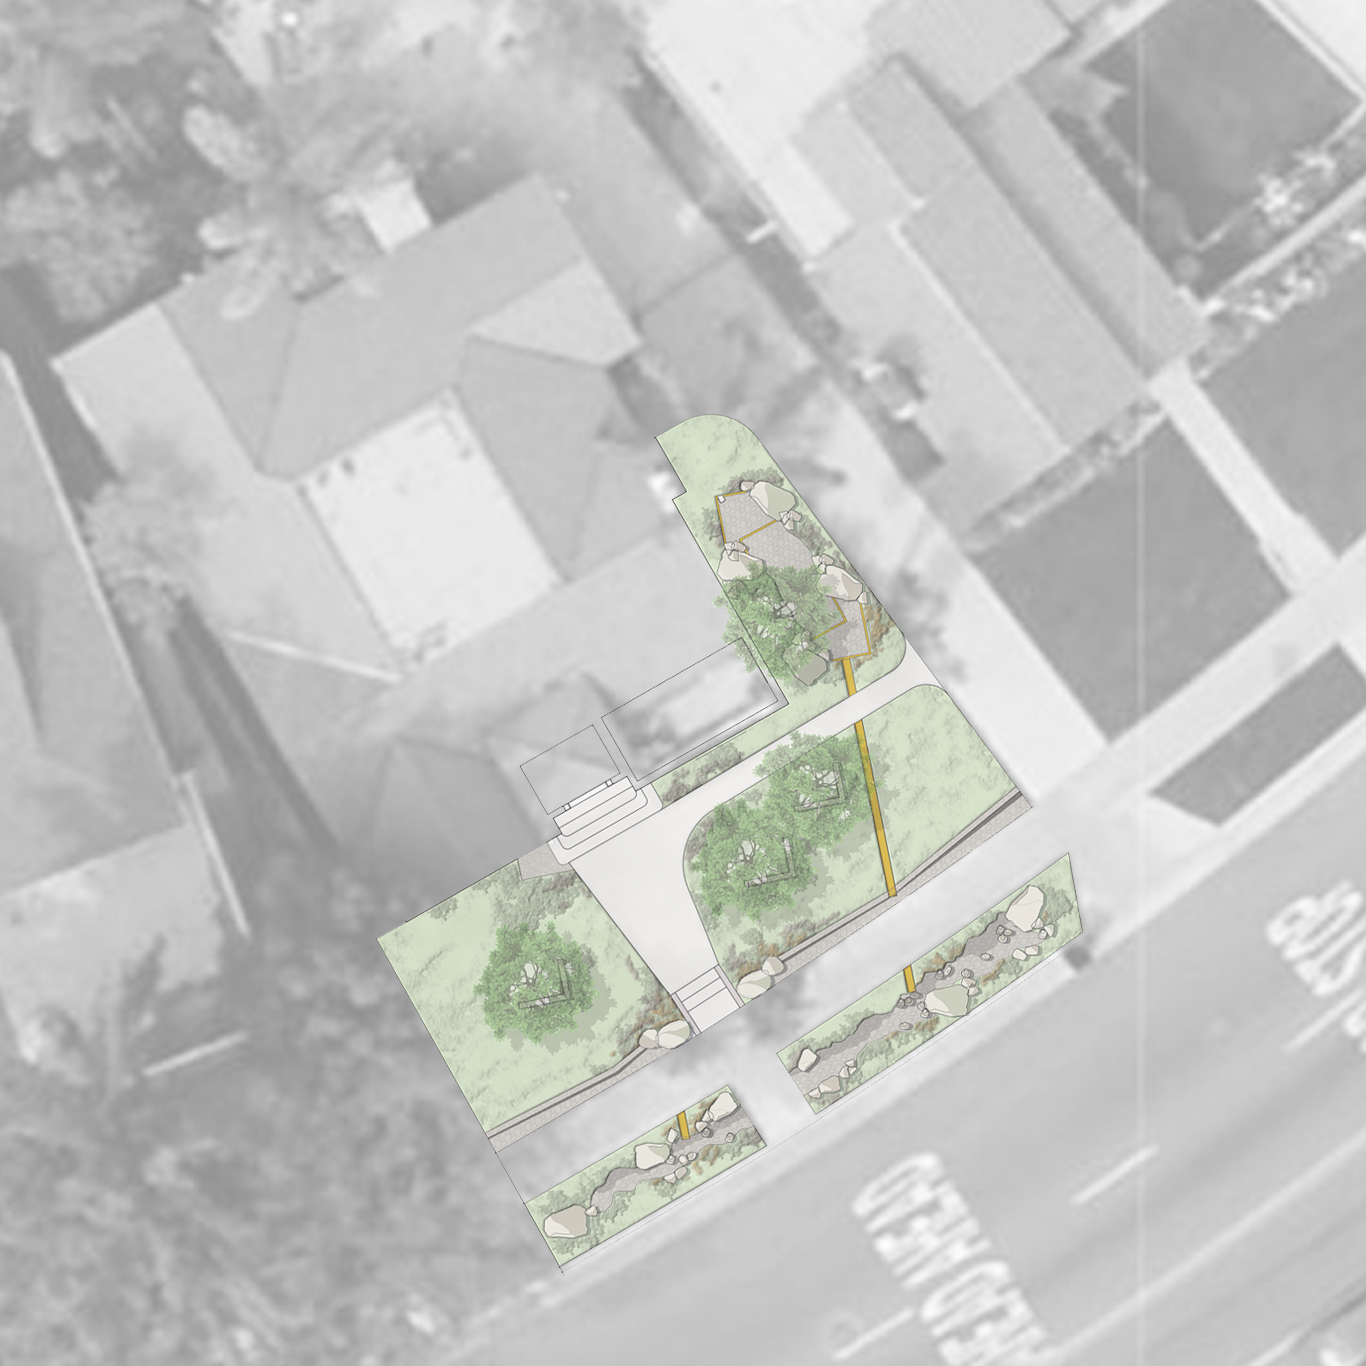 Los Angeles Residential / Inspired by stormwater capture and ecology.